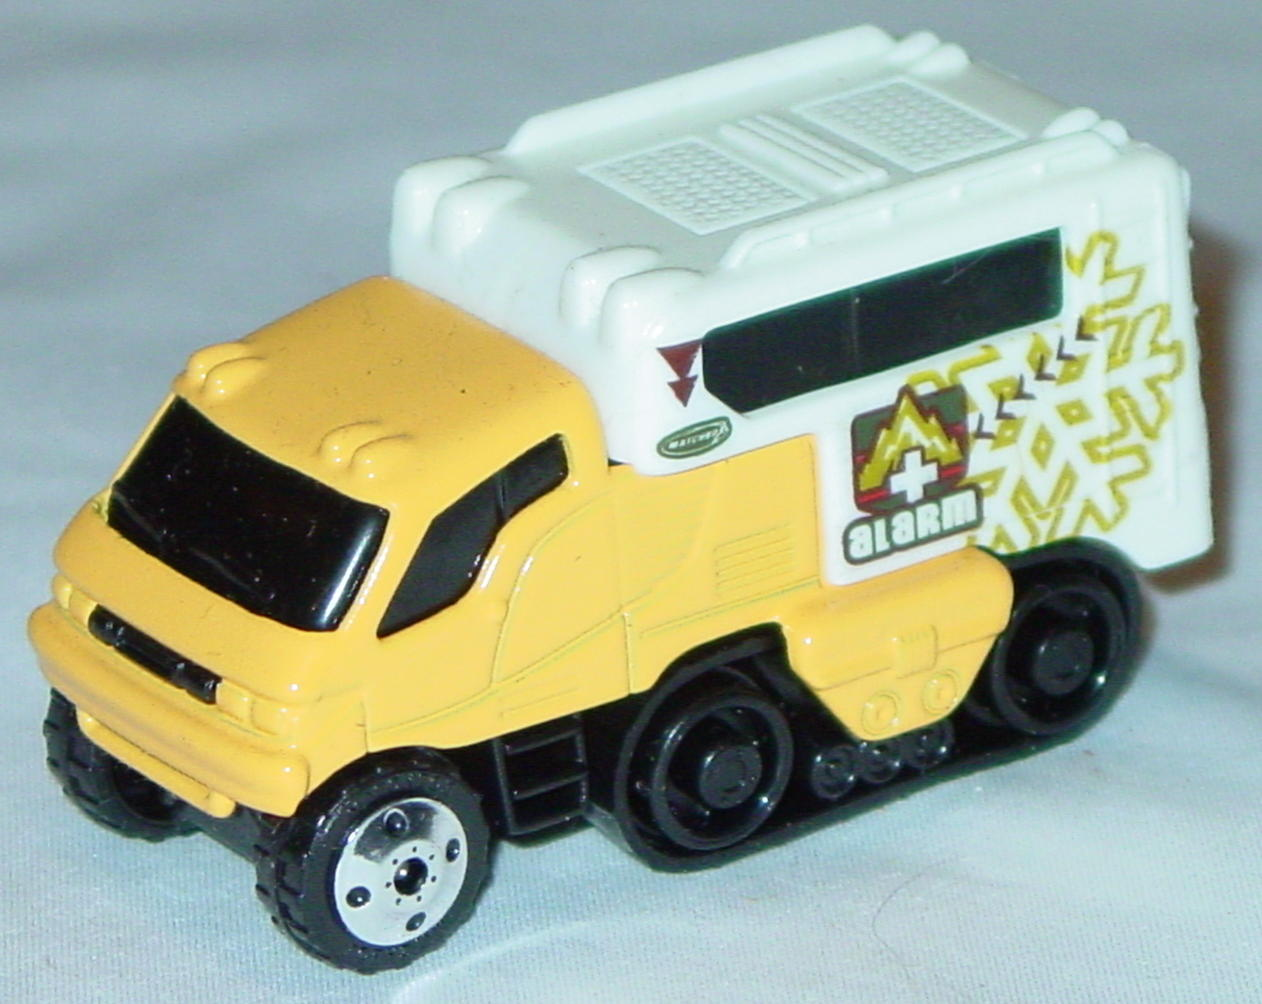 Offshore SuperFast 06 I 9 - Arctic Track Truck org-Yellow Alarm snowflake made in China